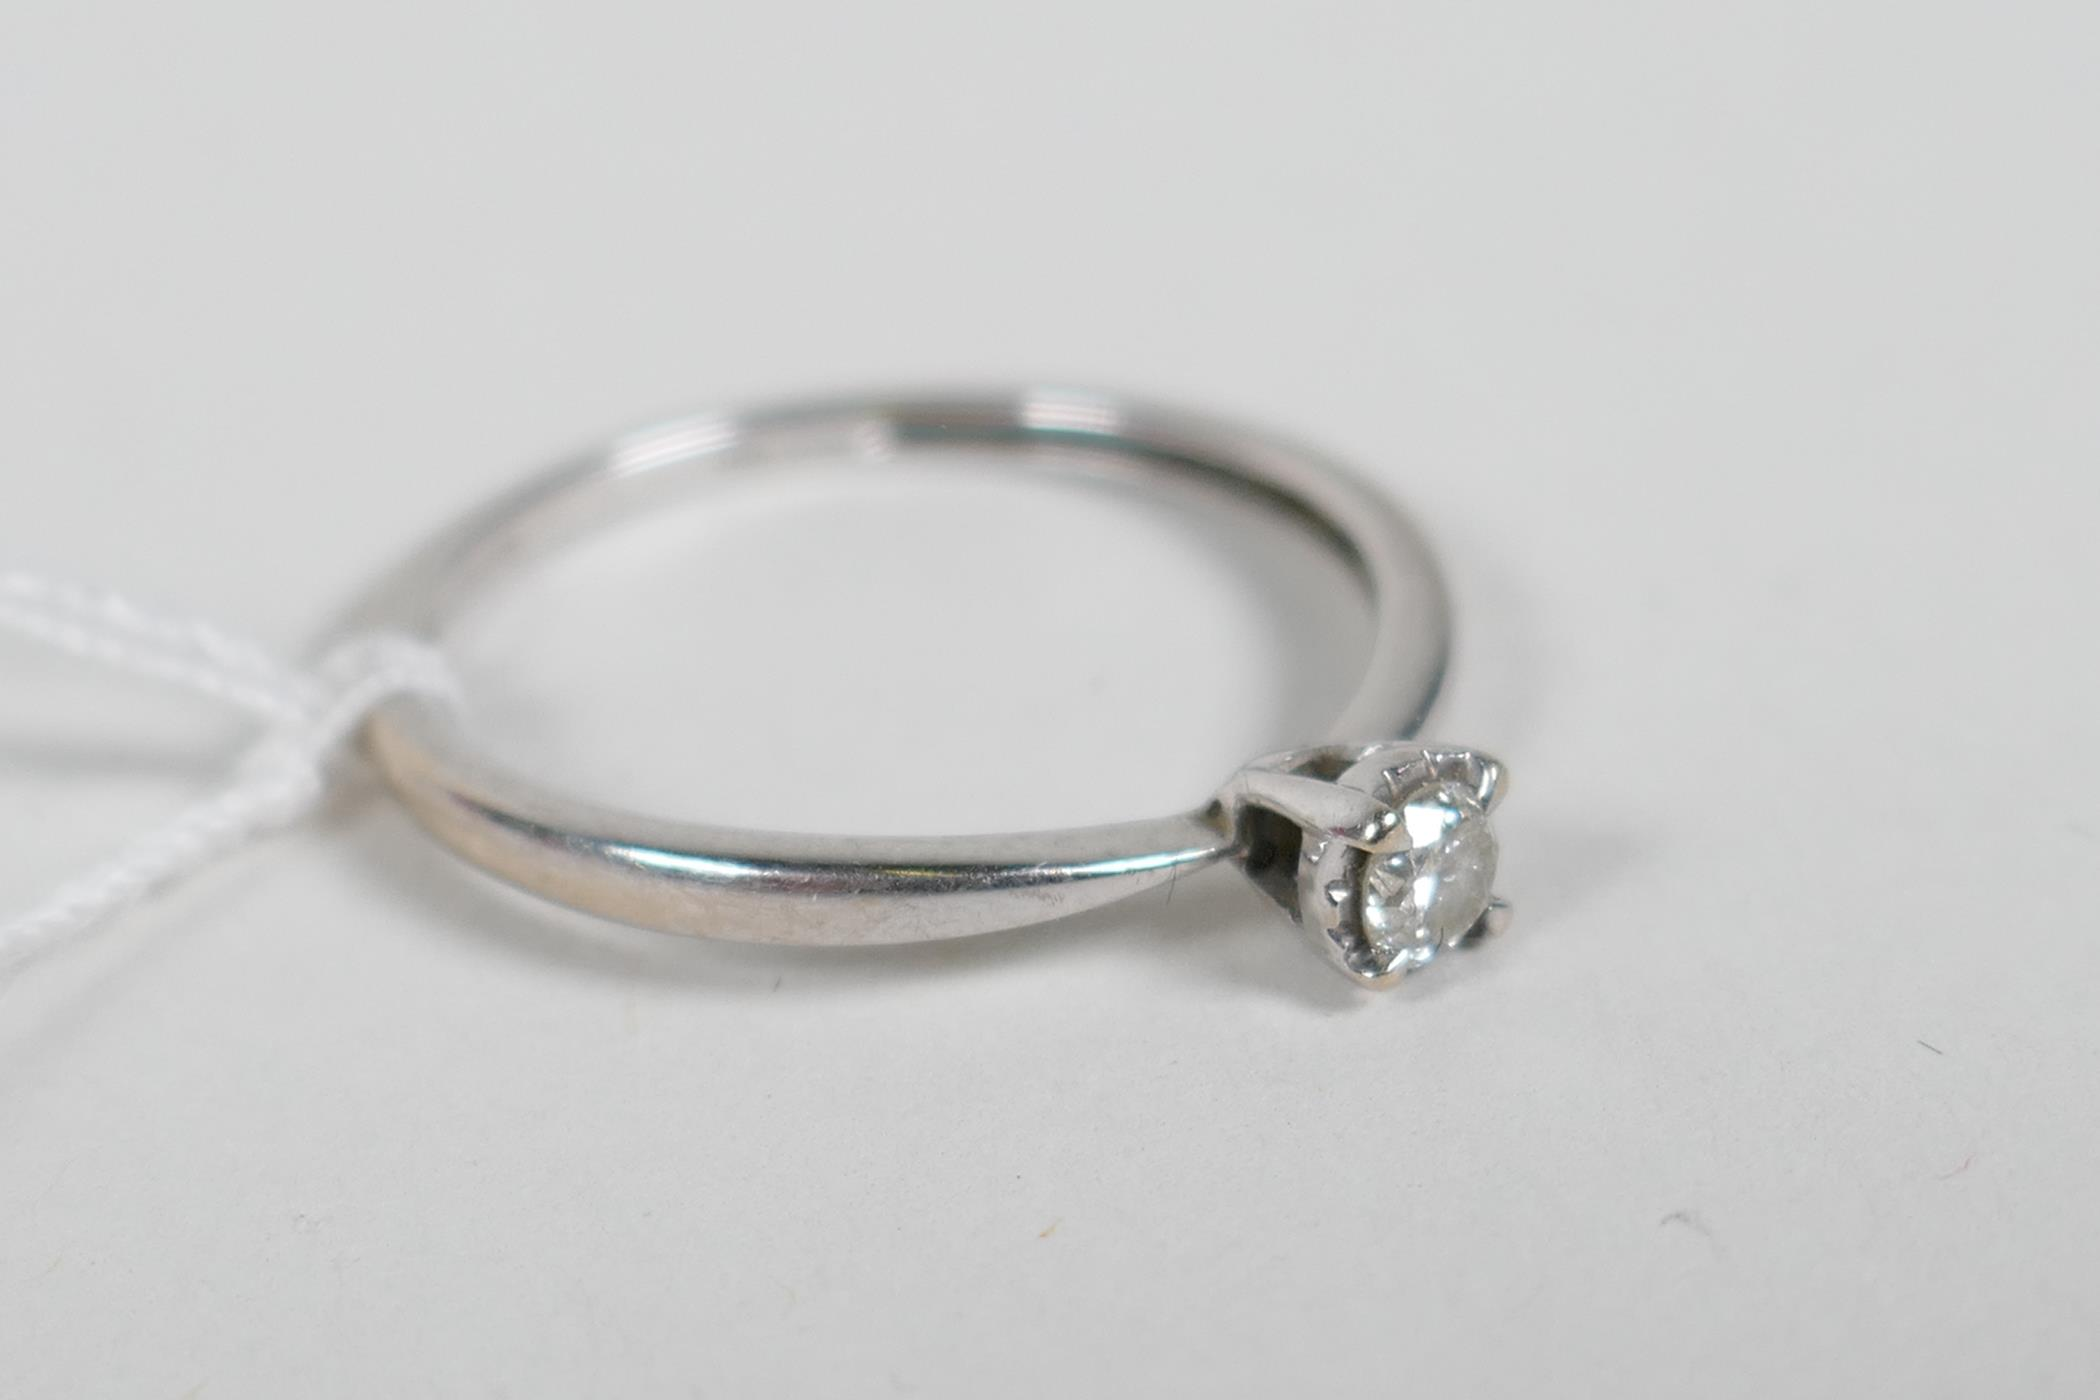 An 18ct white gold and diamond engagement ring, approximate size 'N' - Image 2 of 4